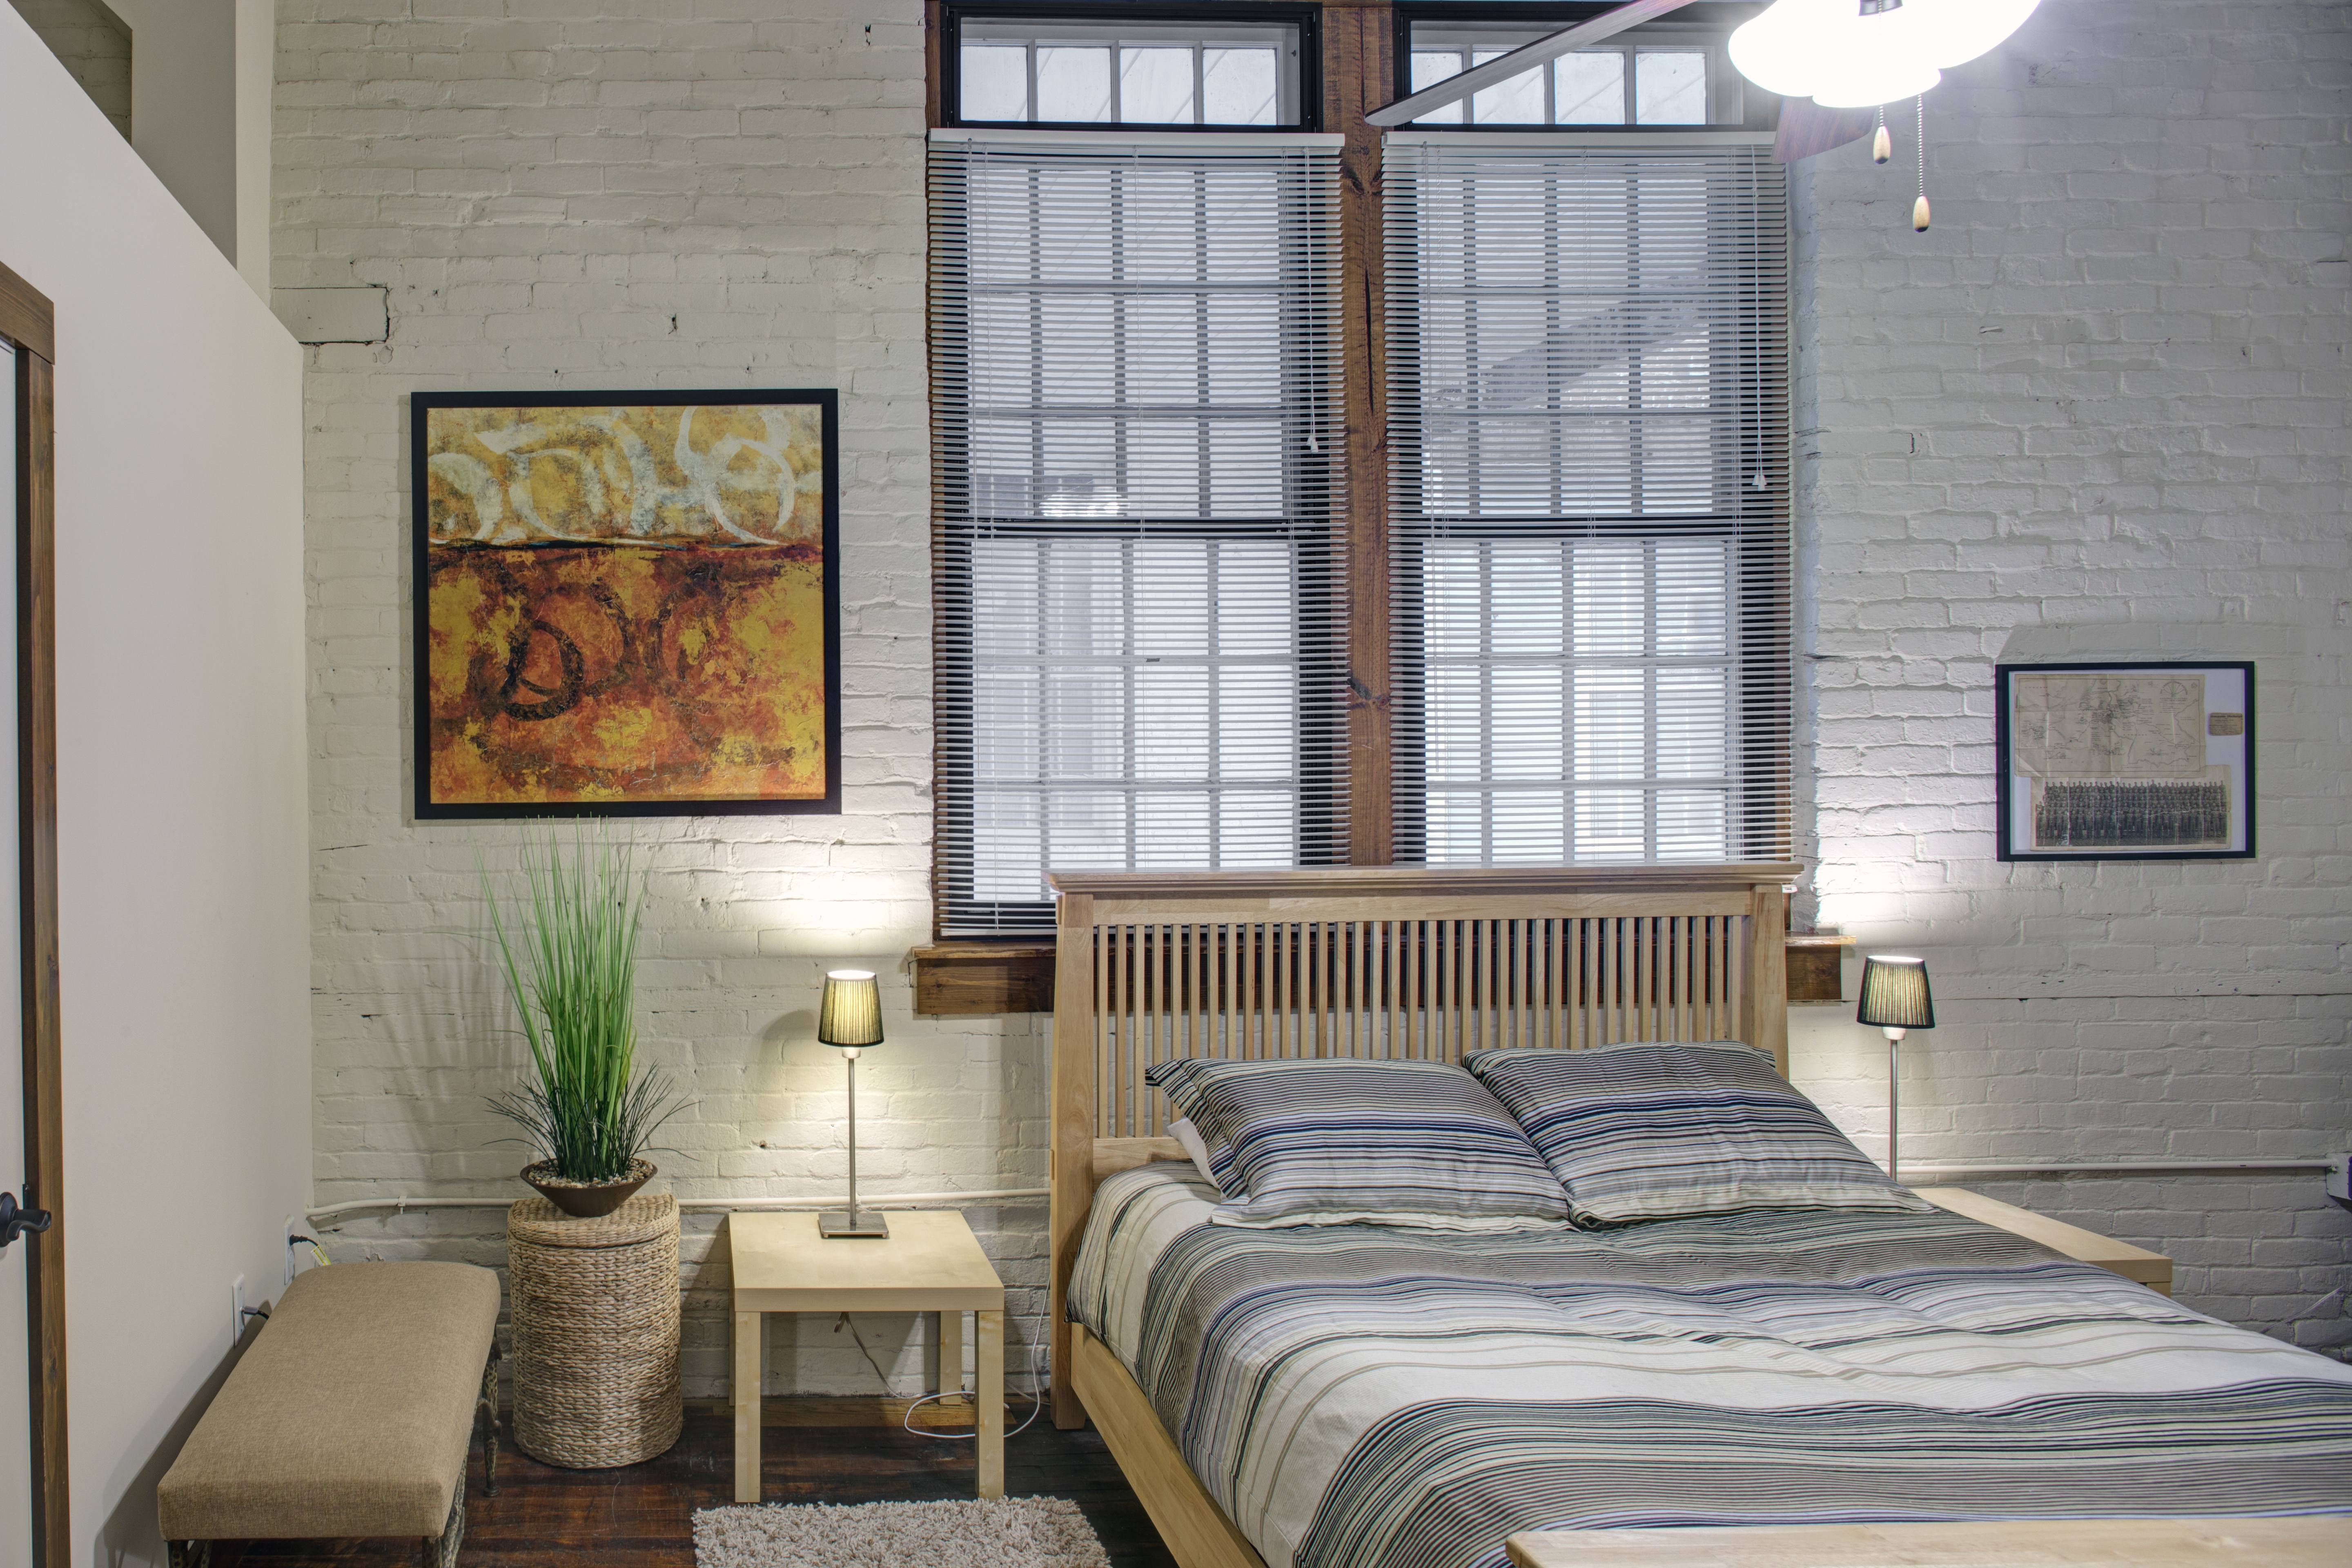 Linden-Lofts-II-0005